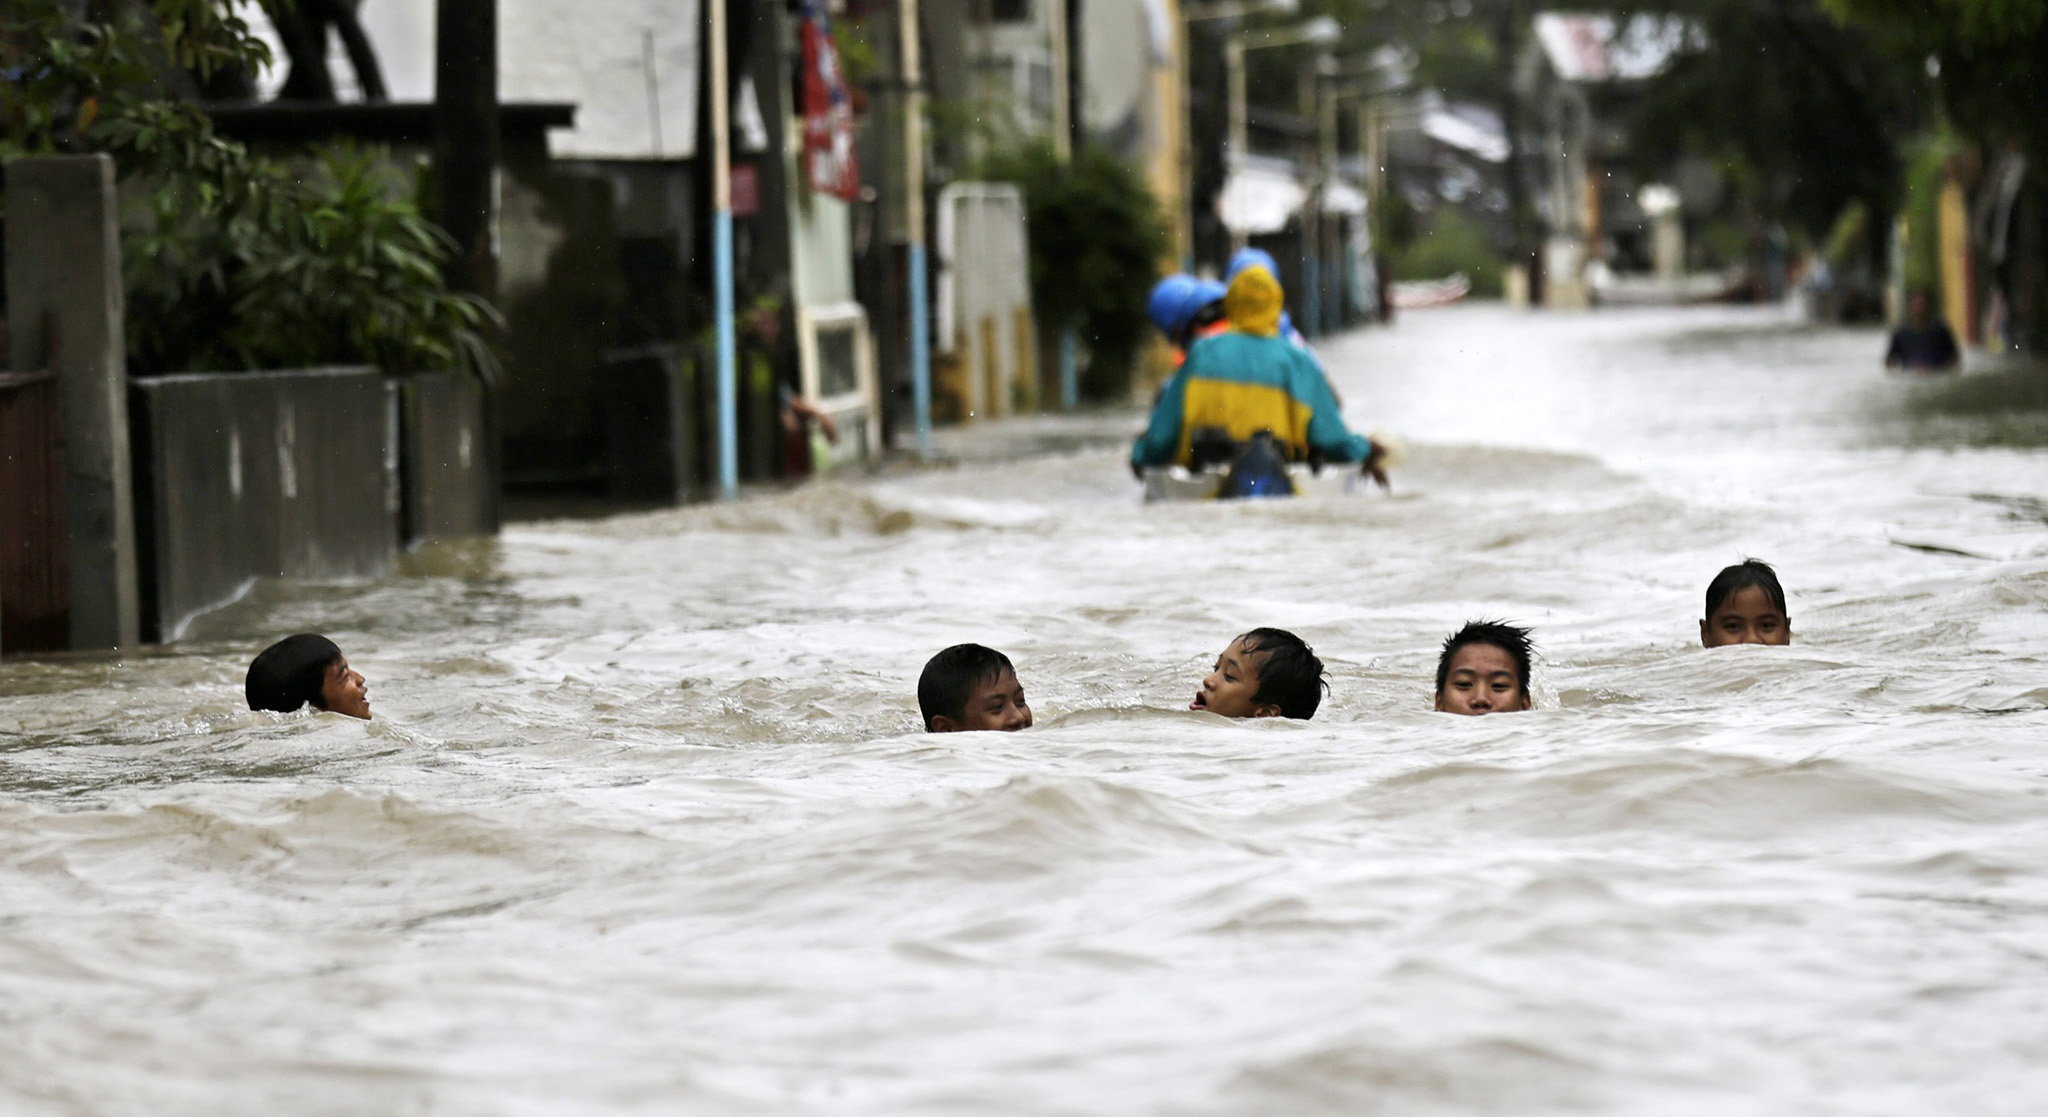 Flood in Bataan province brought by Typhoon Halong.